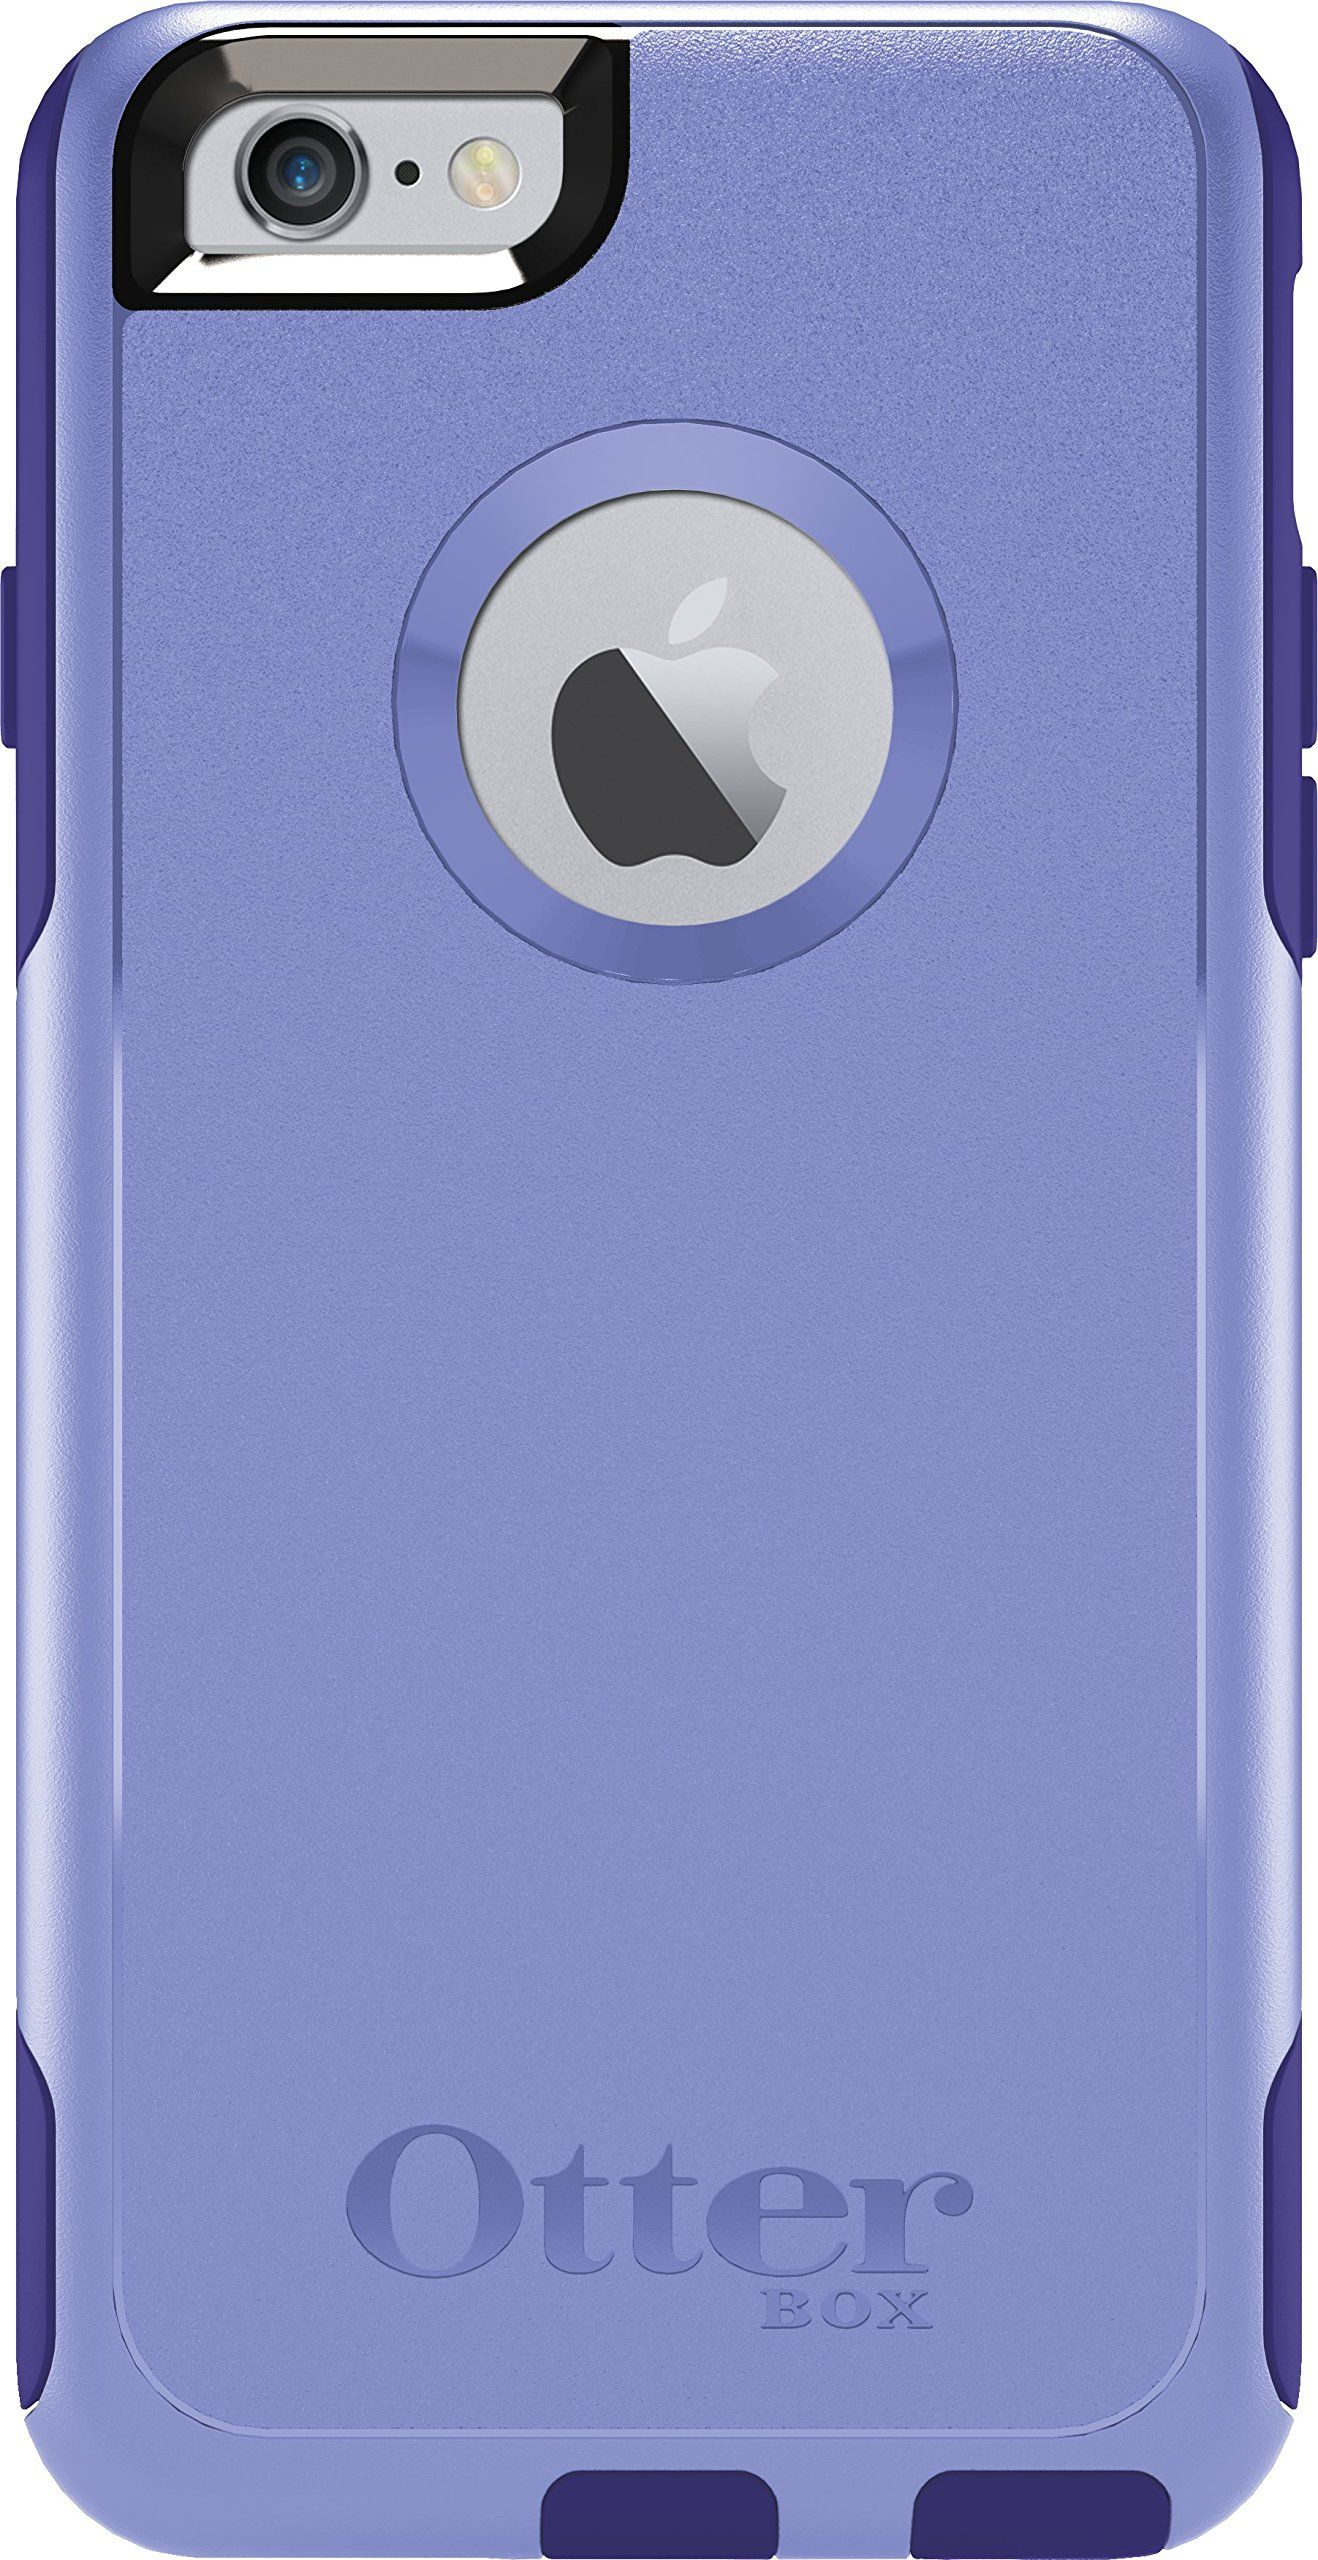 buy popular eedee 80328 Amazon.com: OtterBox COMMUTER iPhone 6/6s Case - Frustration-Free ...